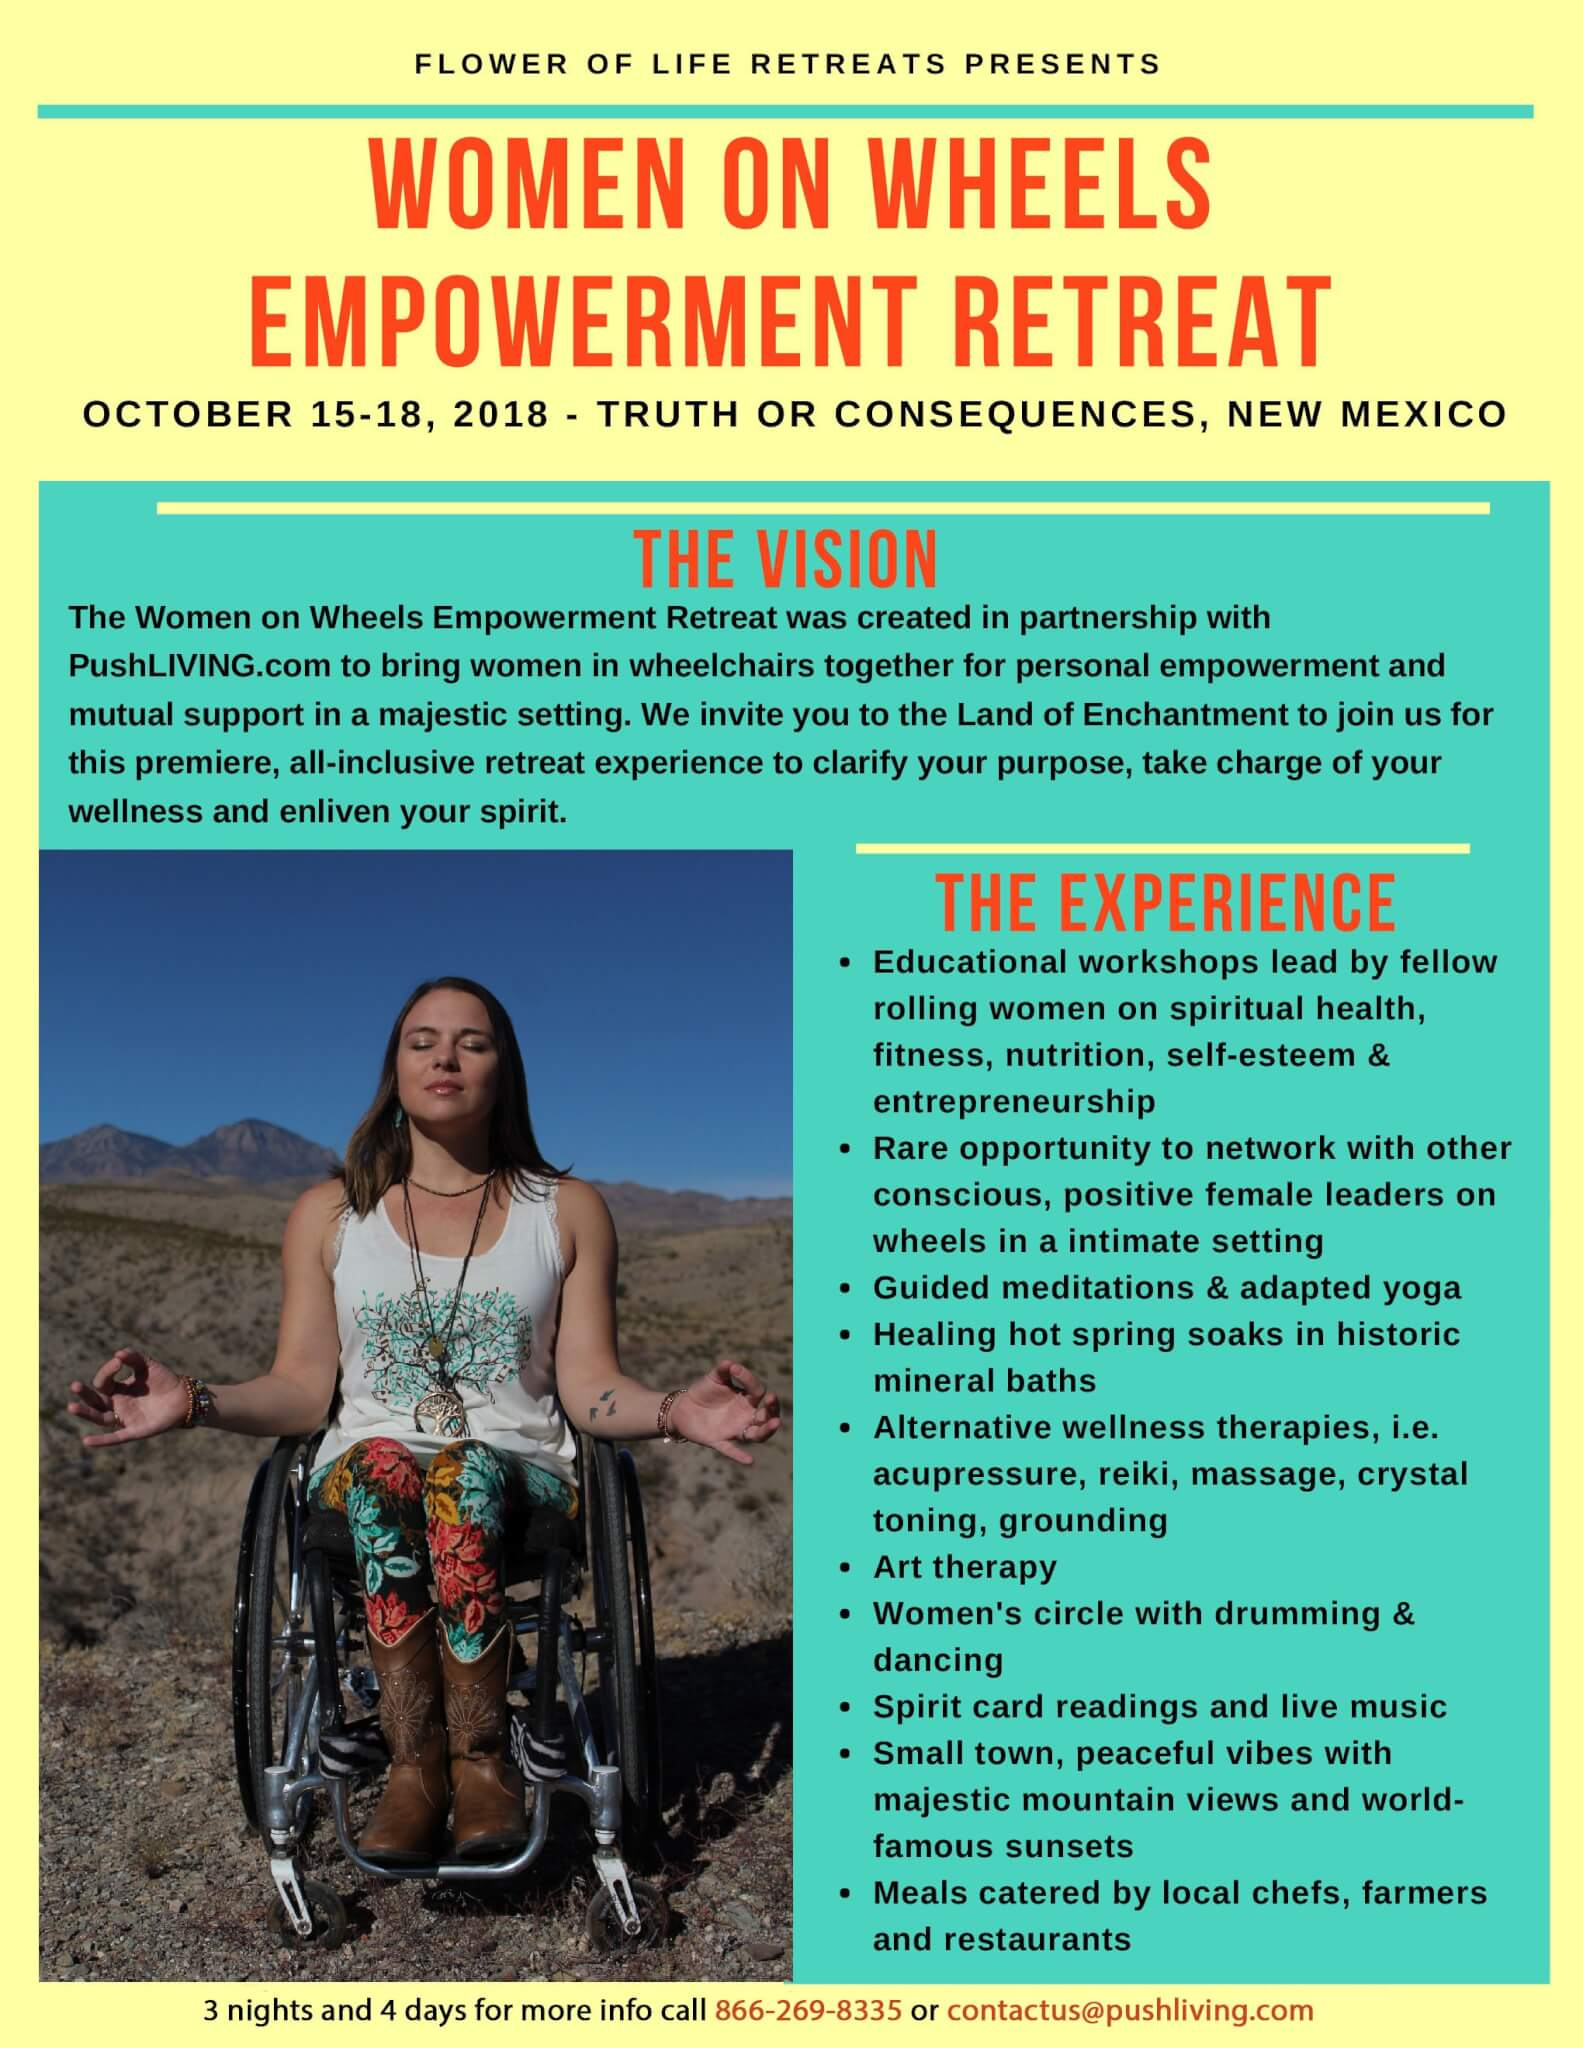 Women on wheels empowerment retreat - PUSHLiving Podcast 018 | WOW! Woman on Wheels Empowerment Retreat with Kristina Rhoades